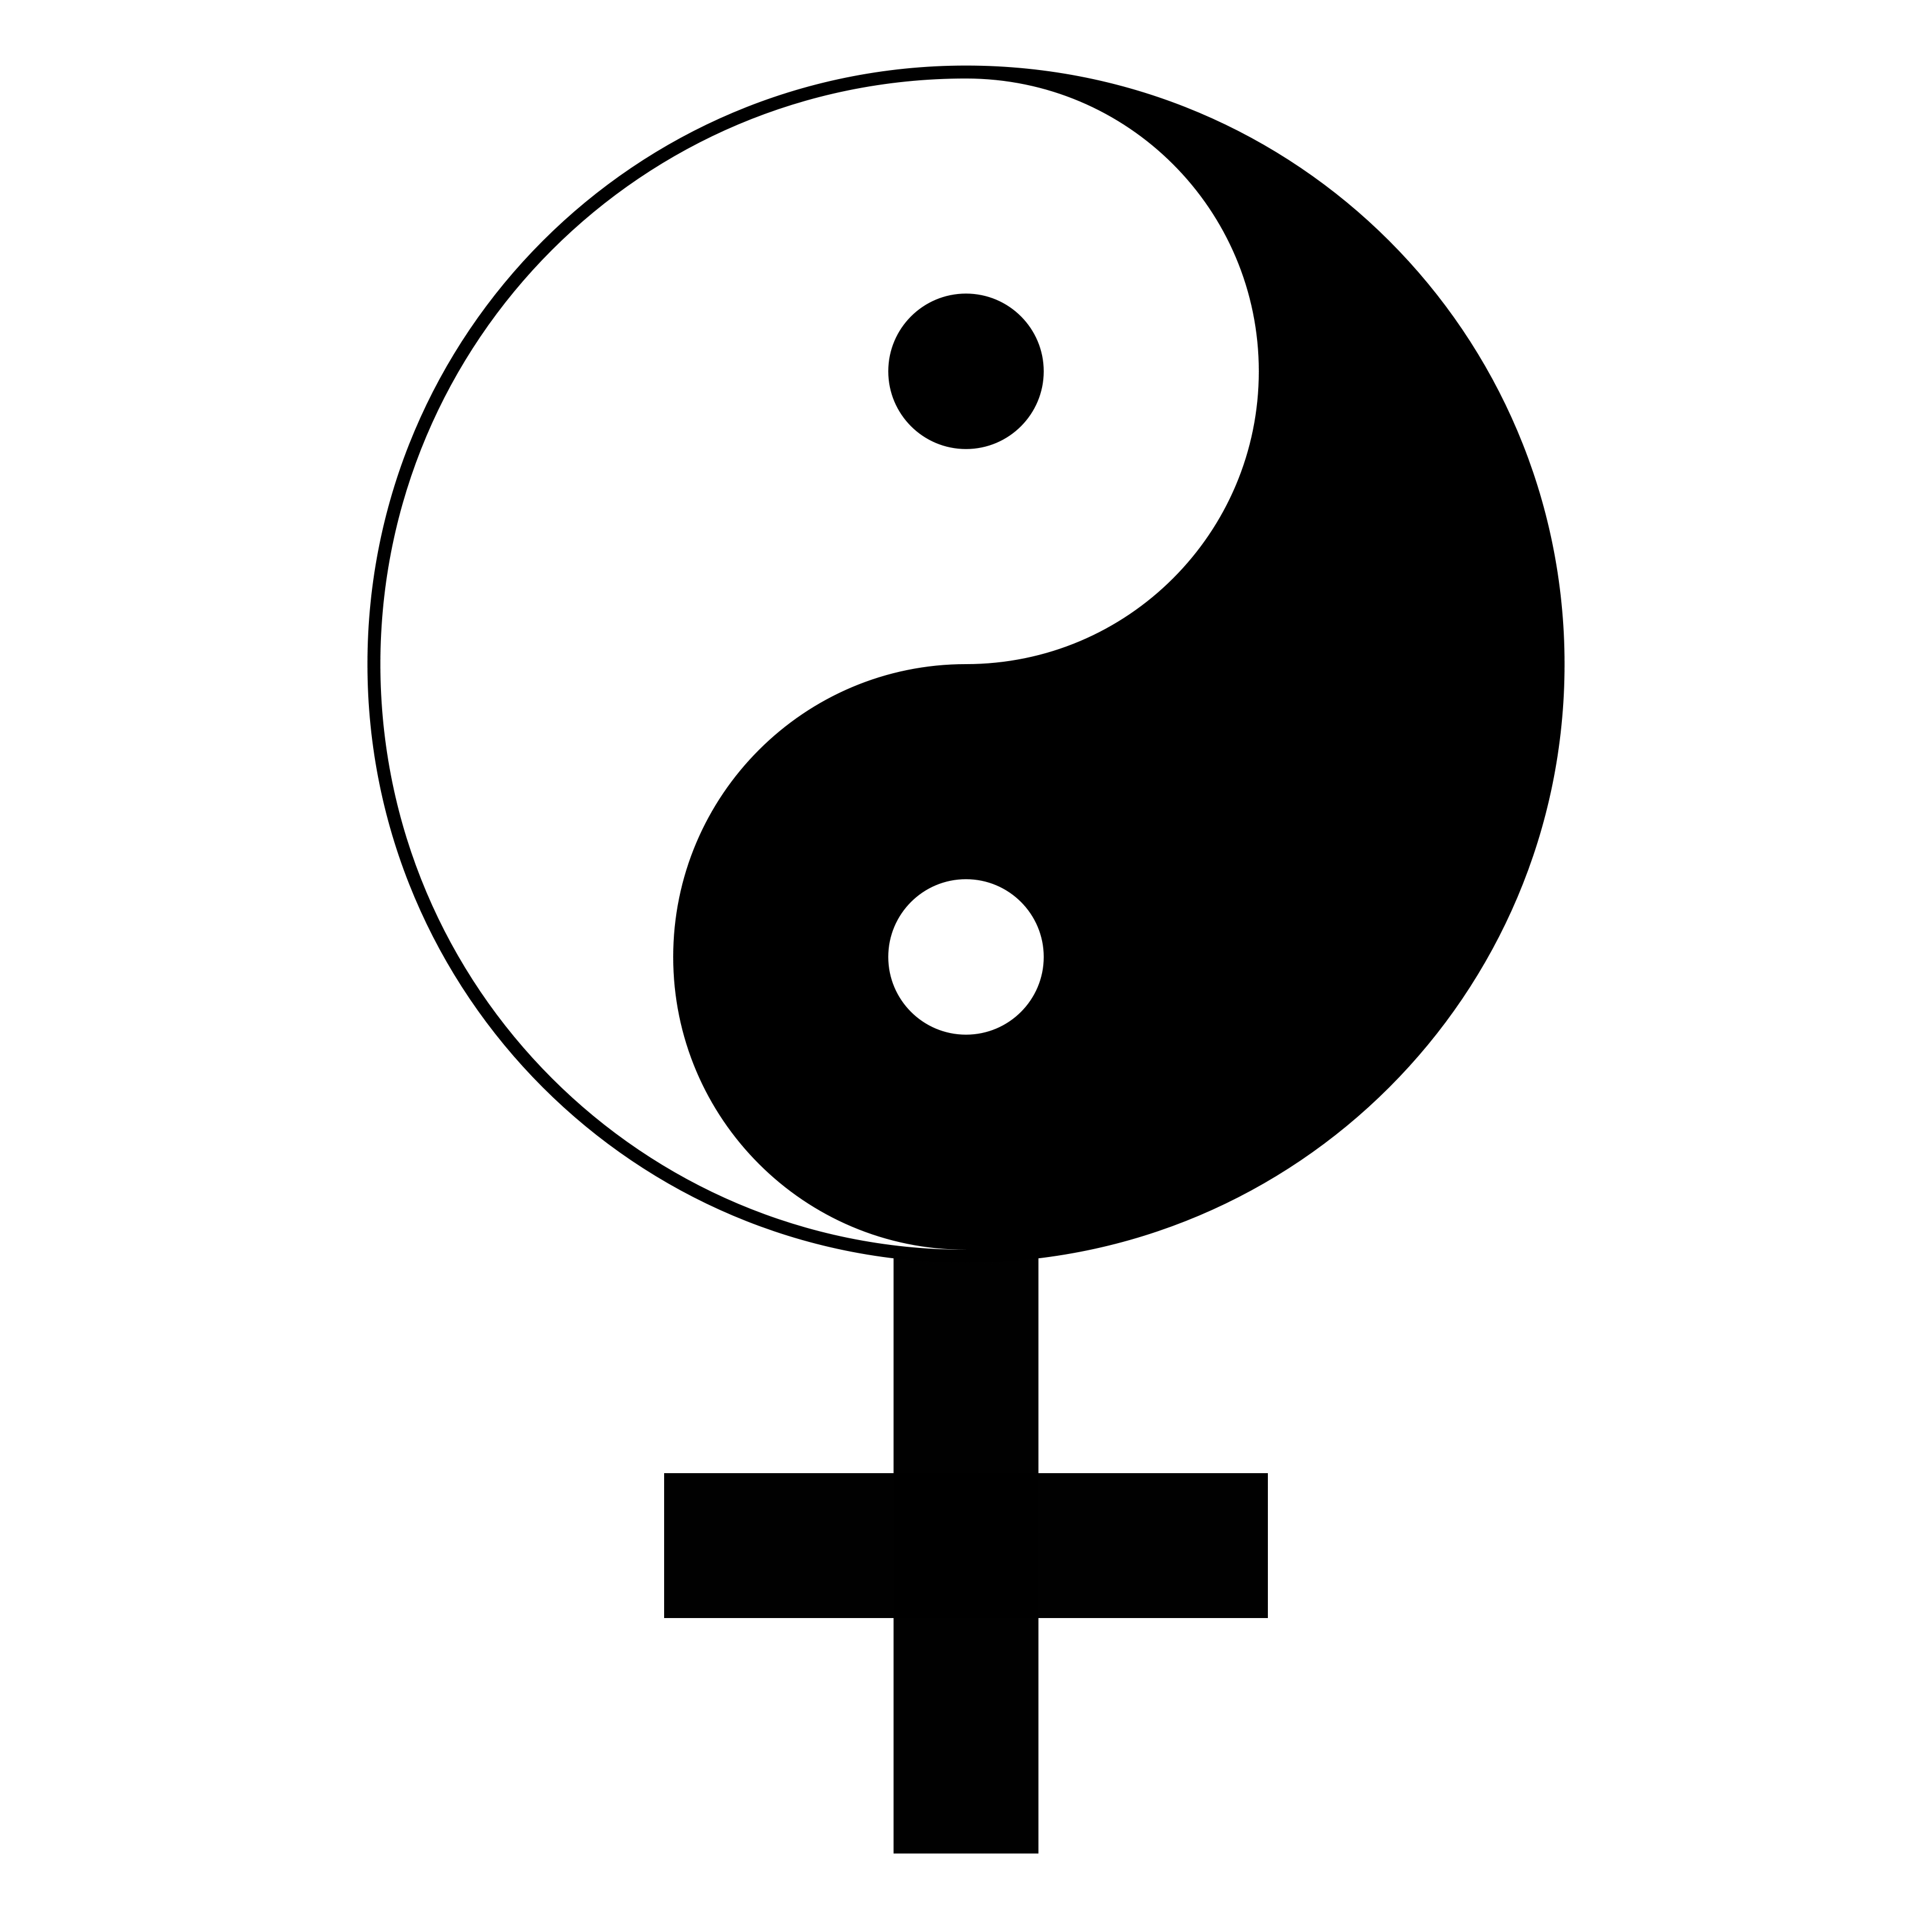 Symbol Of Woman Download Icons Png image #13302